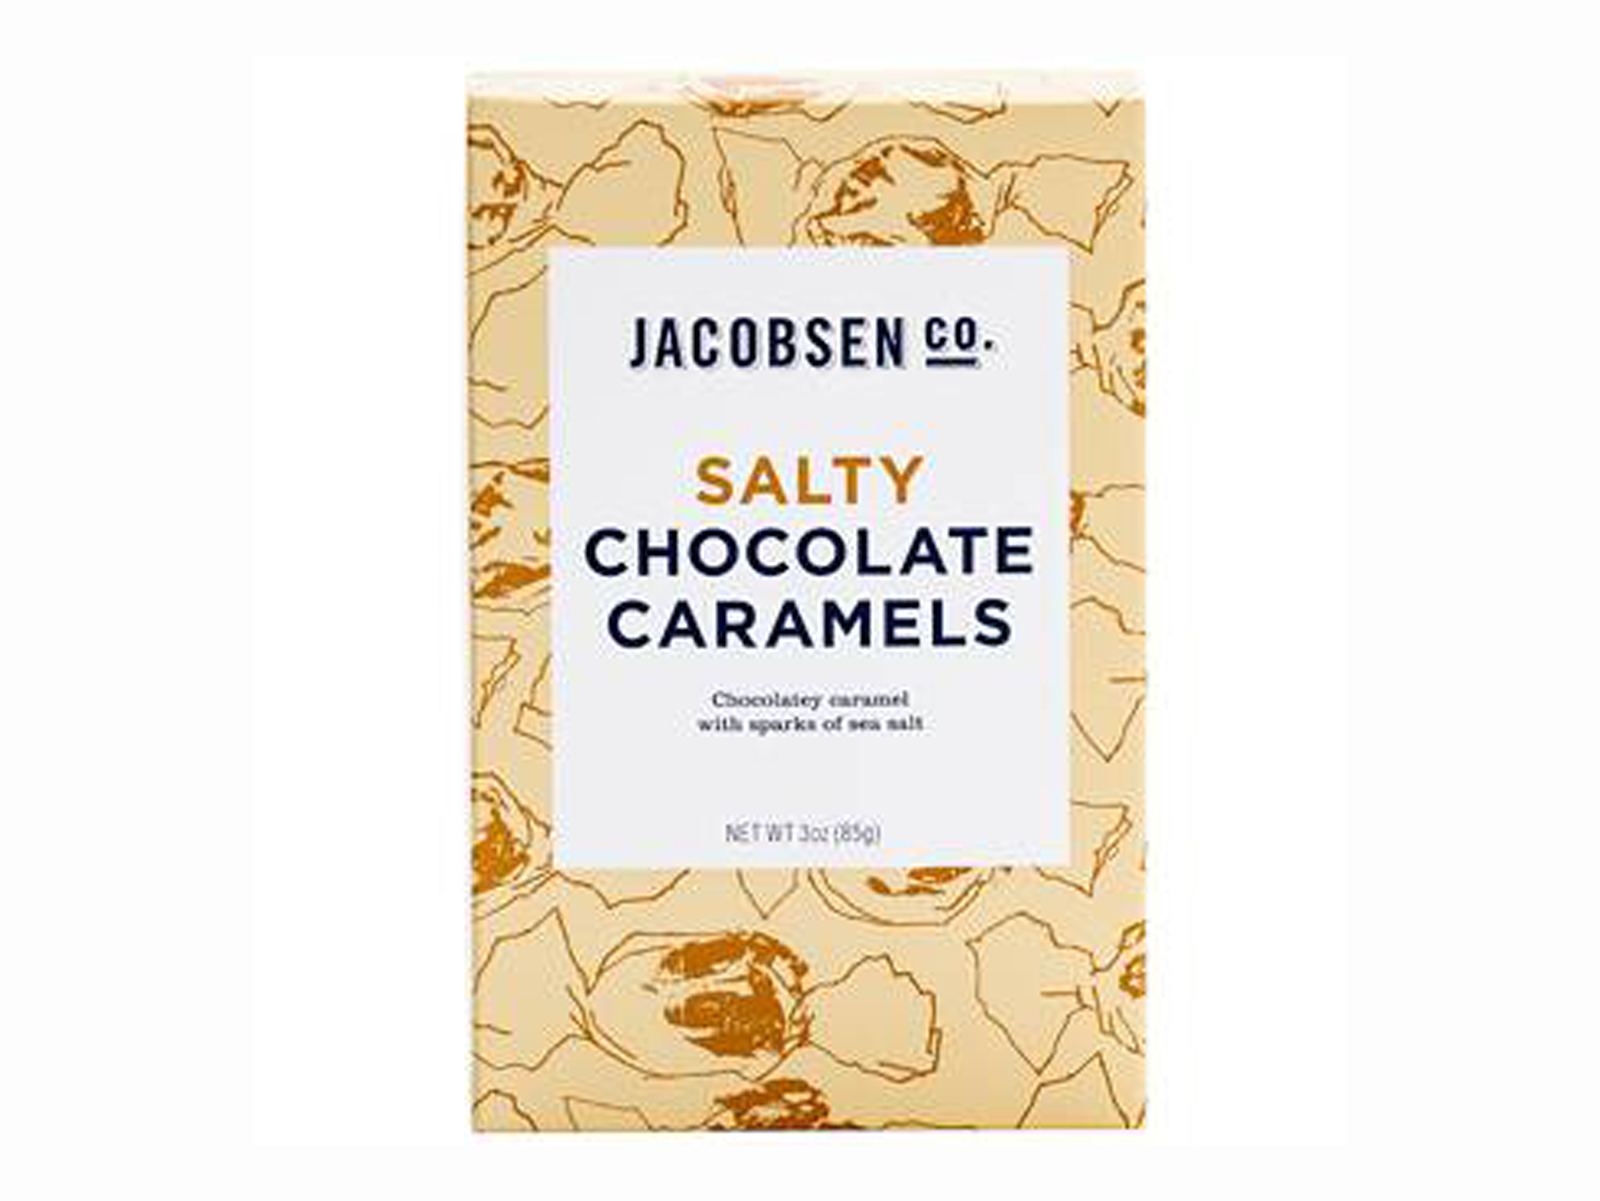 These salt caramels from chef favorite Jacobsen Salt Co. are the perfect balance of chewy, salty, and sweet. Caramel lovers will want to order these again and again. $7 at freshdirect.com